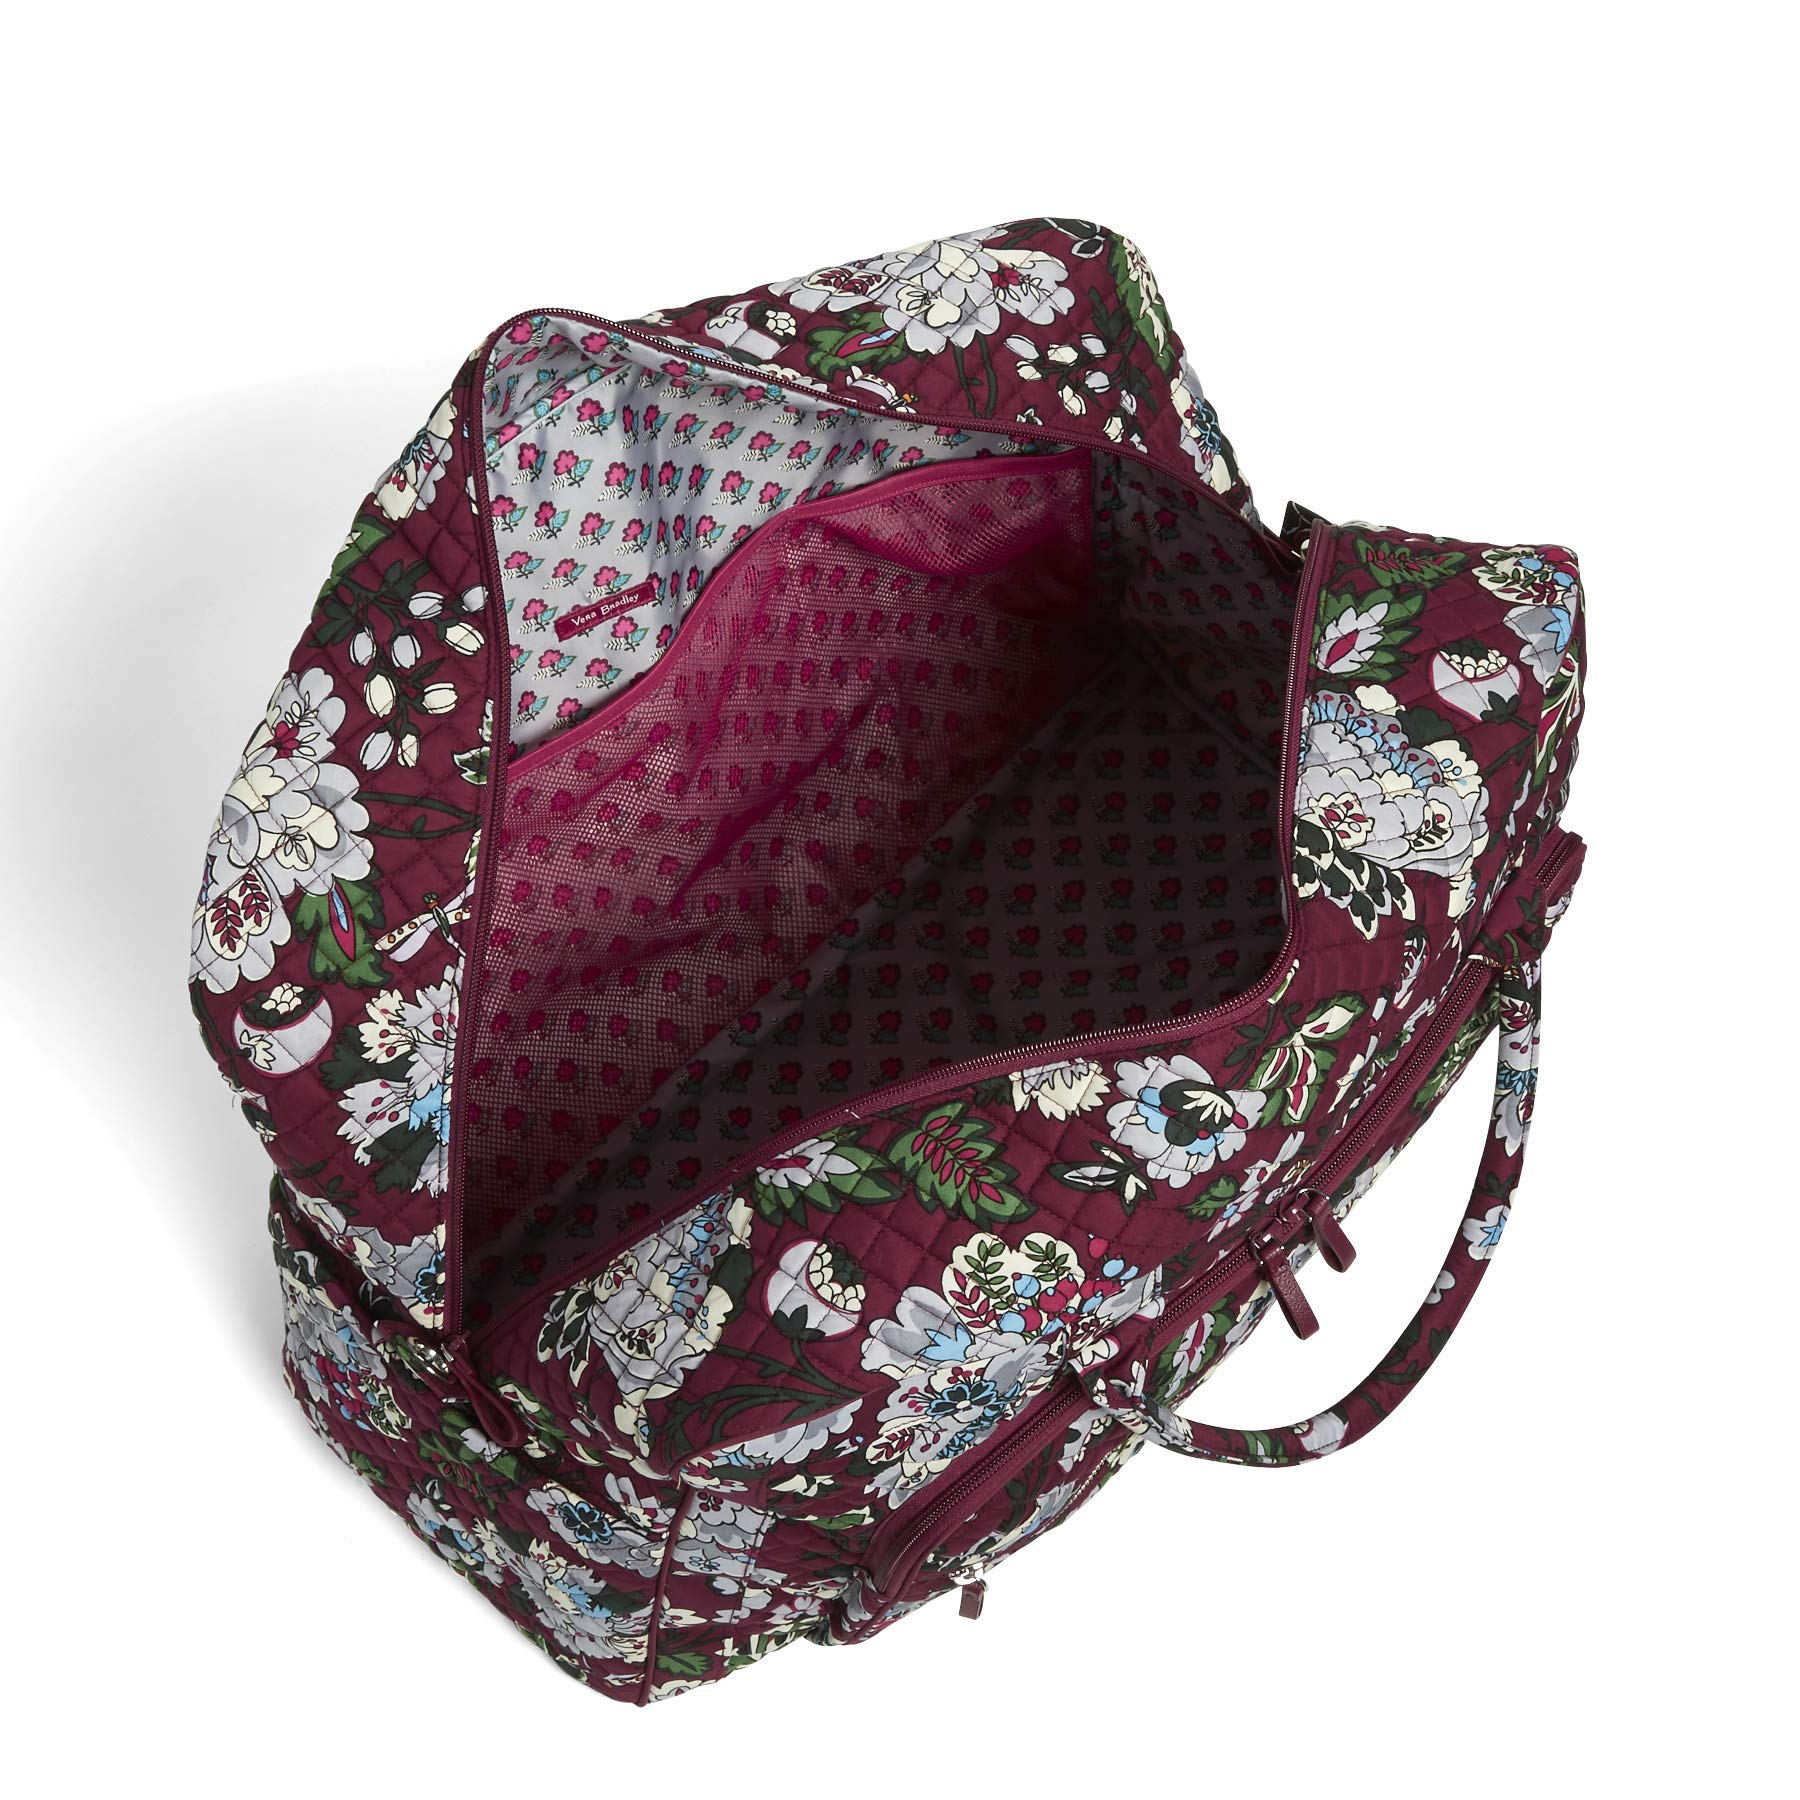 Vera Bradley Iconic Grand Weekender Travel Bag, Signature Cotton, bordeaux blooms by Vera Bradley (Image #6)